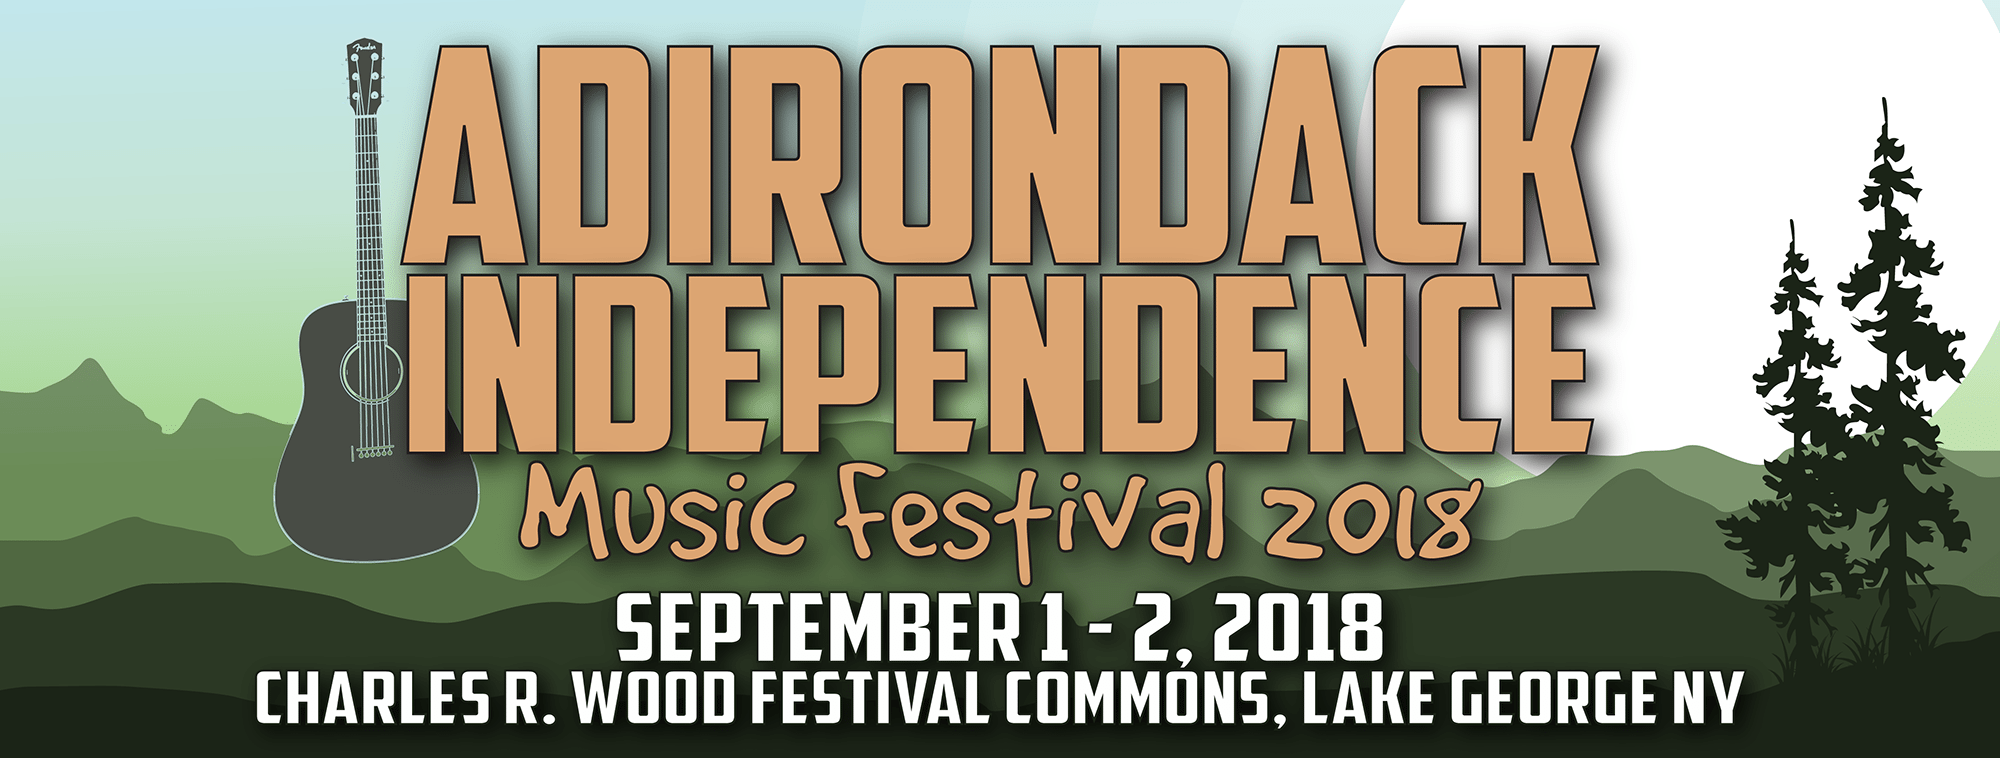 Adirondack Independence Music Fest Initial Lineup Announced | Utter ...